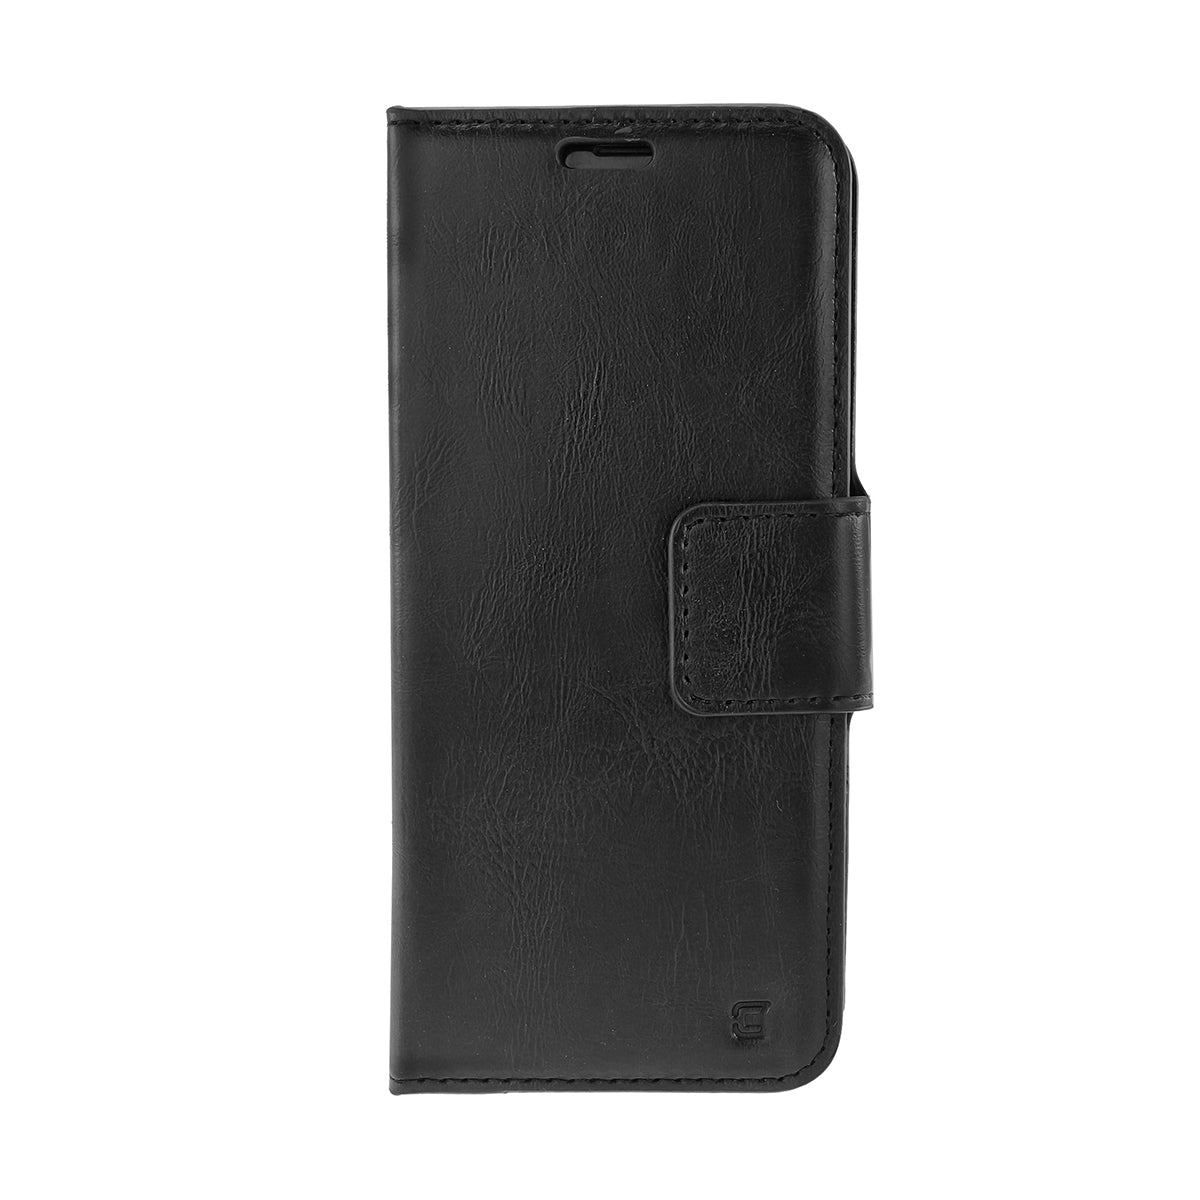 Bond St. Wallet Folio Case - LG Q6 - Black